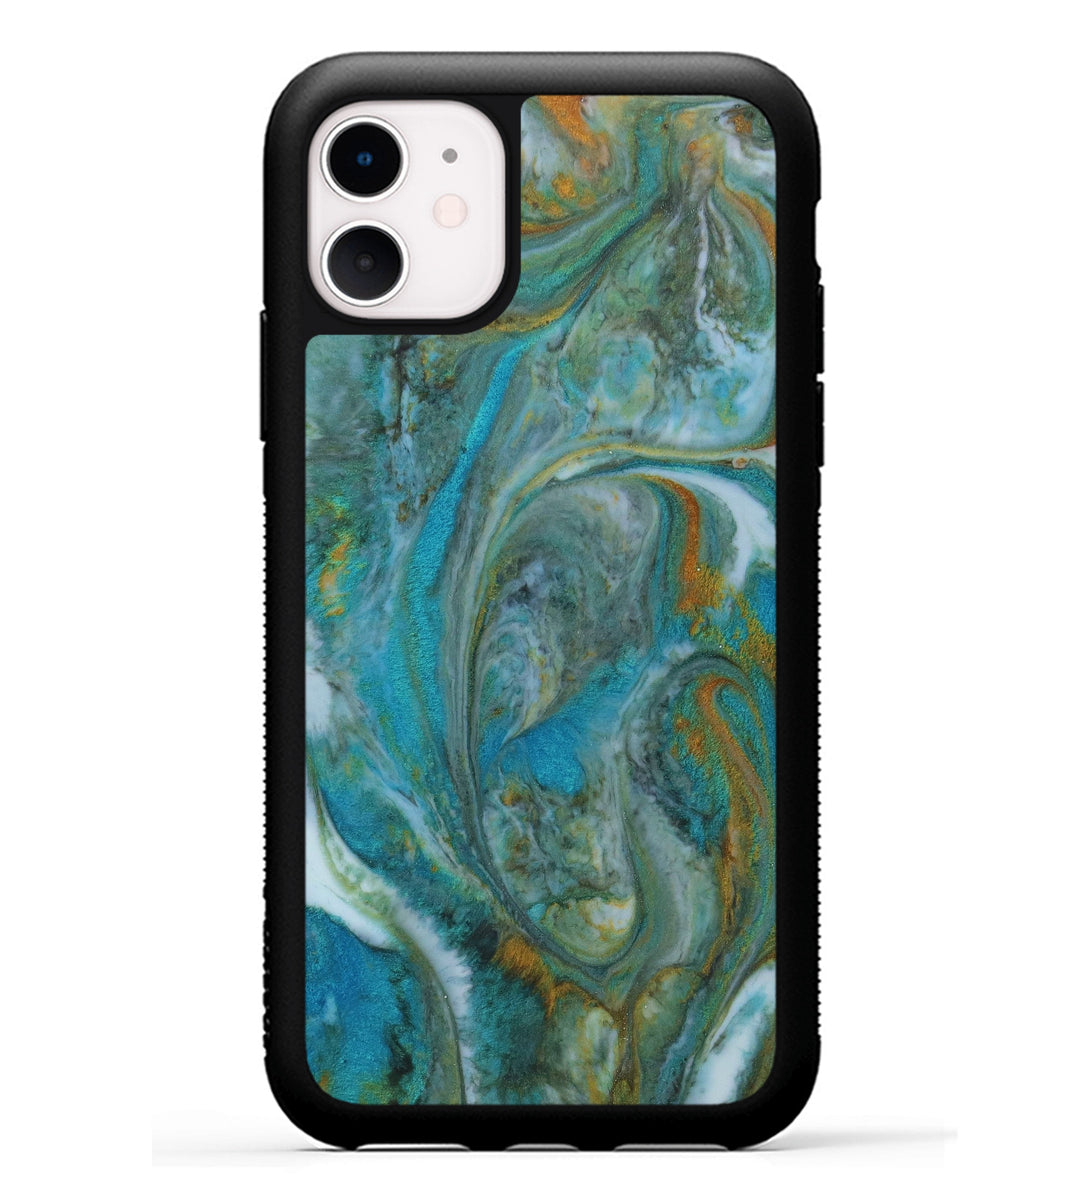 iPhone 11 Case - Kiyoon (Teal & Gold, 347102)